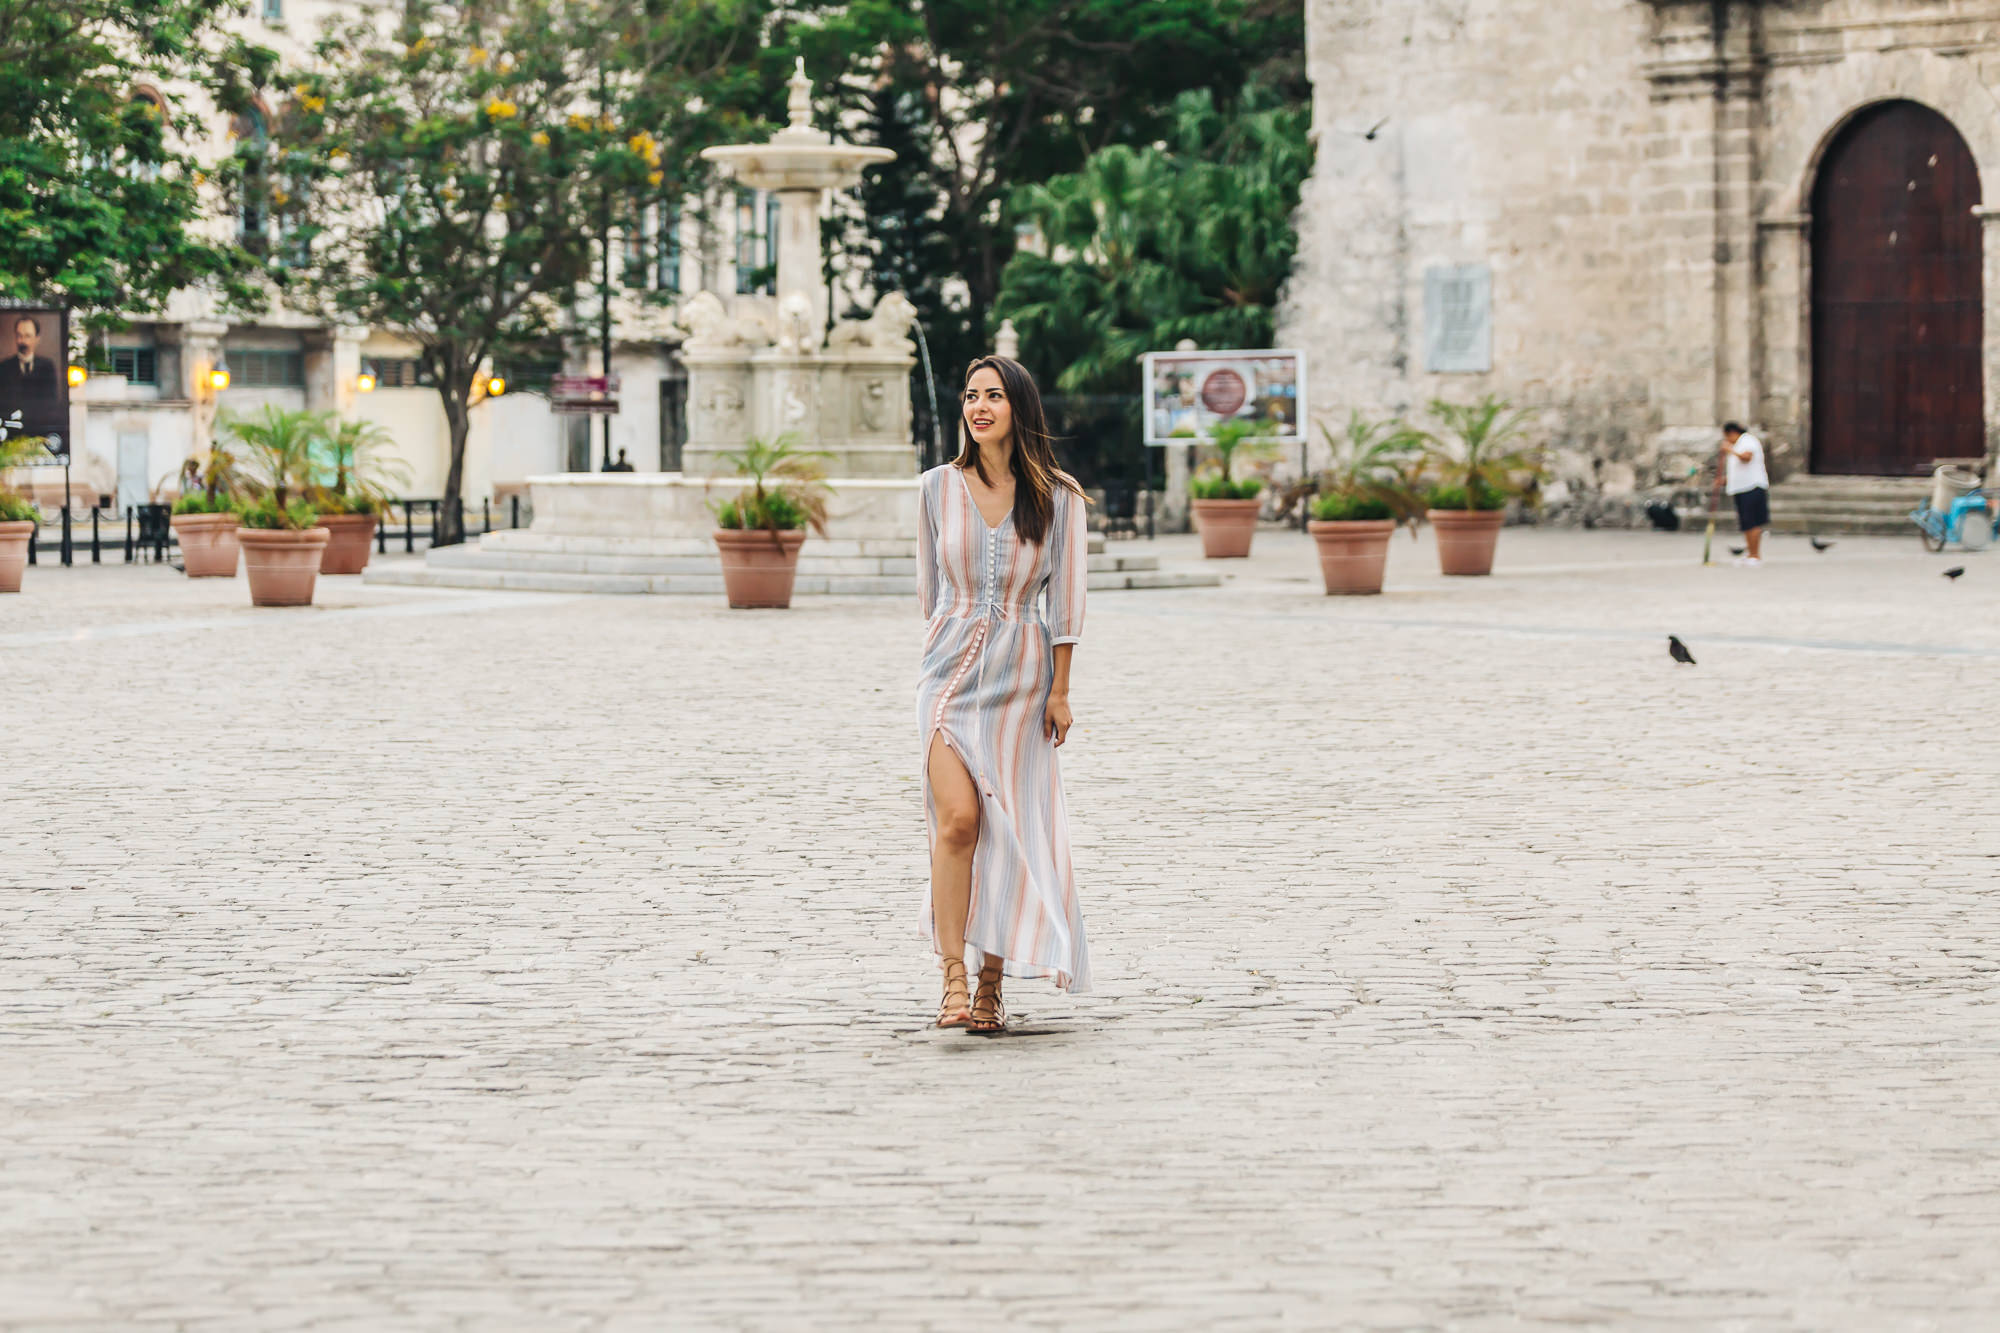 We took advantage of early mornings in Old Havana while the streets were empty